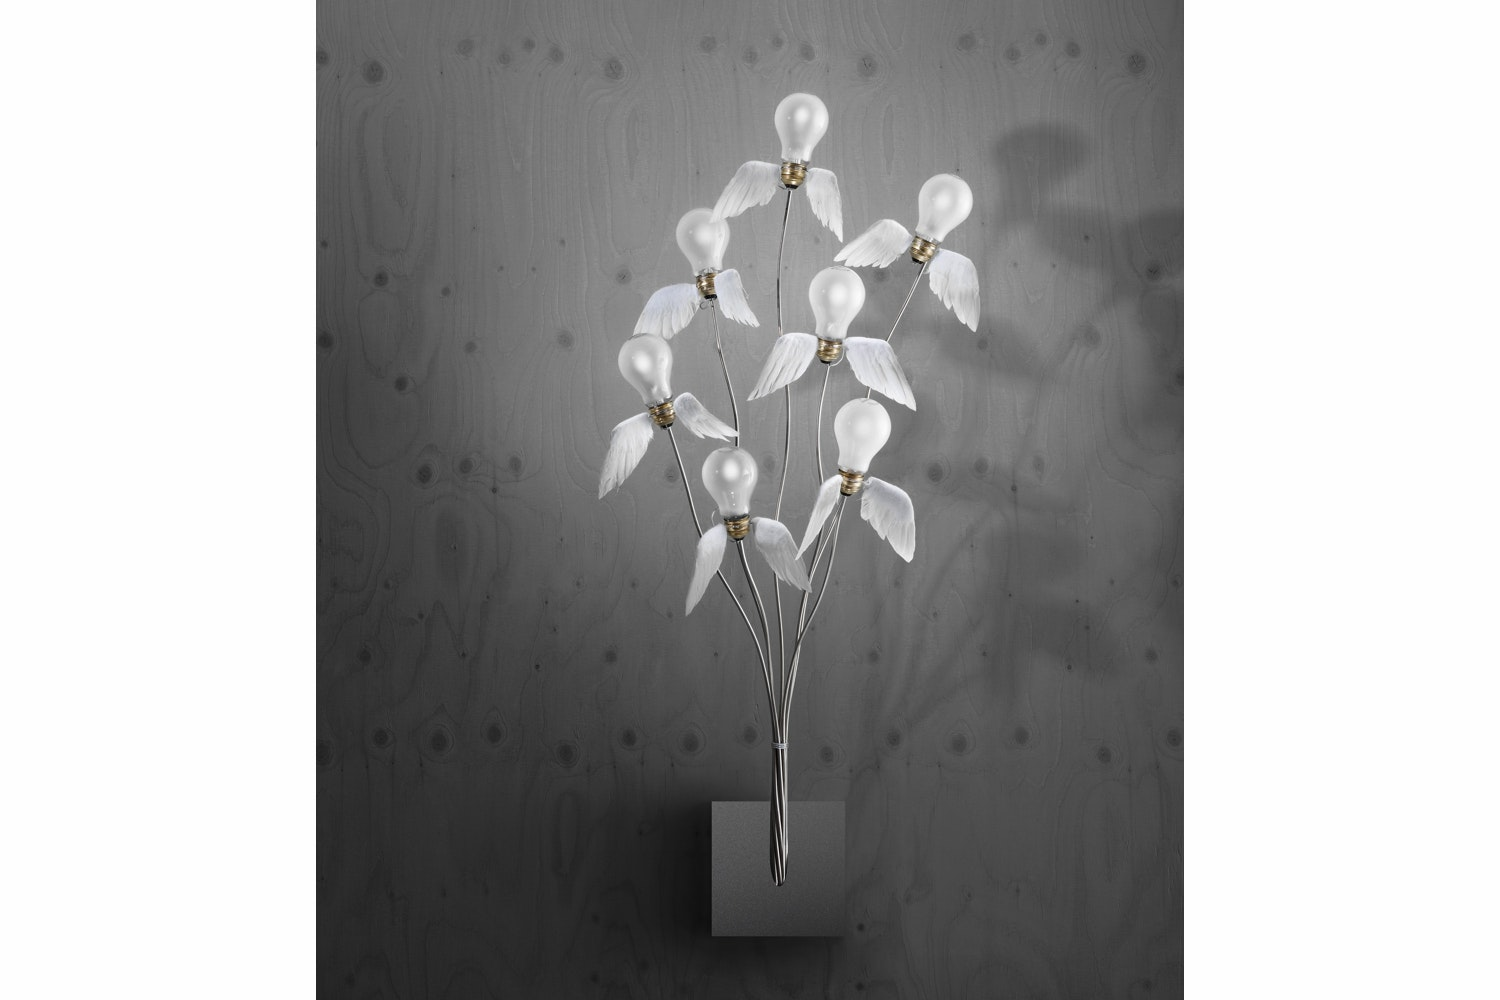 Seven off the Wall Wall Lamp by Ingo Maurer und Team for Ingo Maurer